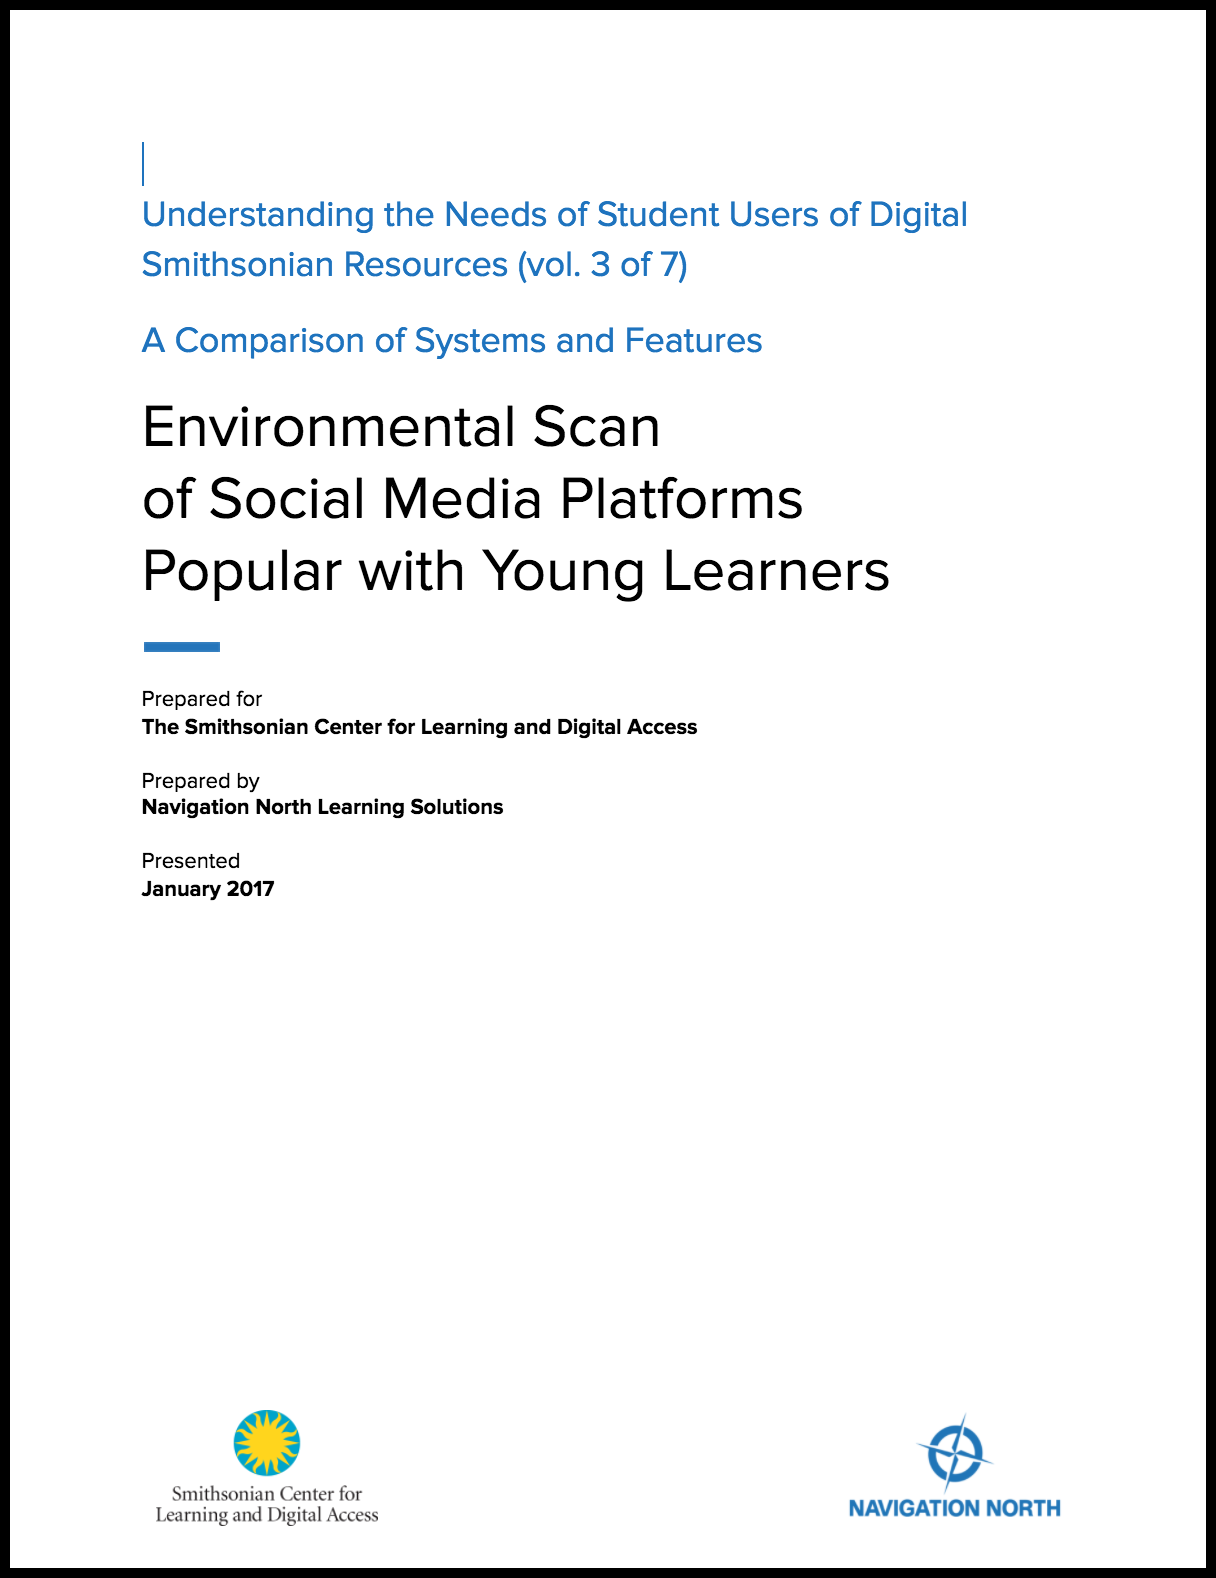 Environmental Scan of Social Media Platforms Popular with Young Learners